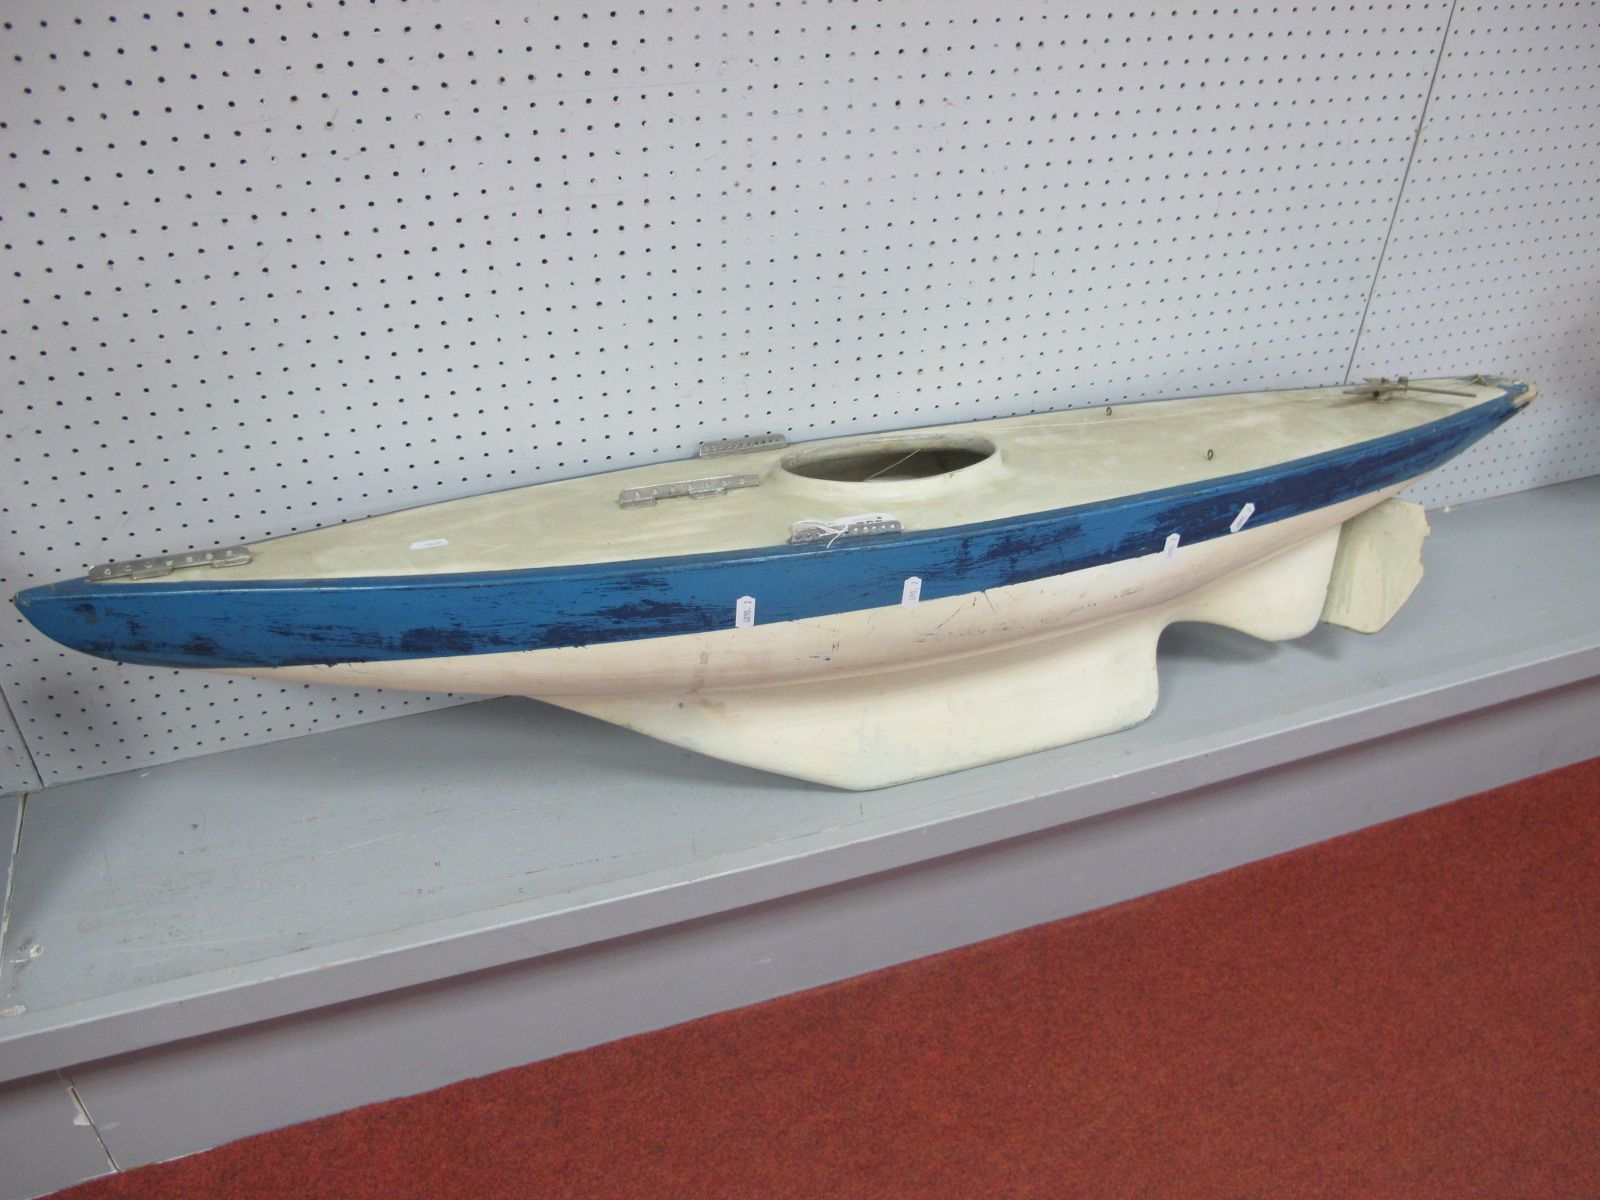 A Scratch Built Radio Control; Pond Yacht/Sail Yacht, no electronics present, will require full